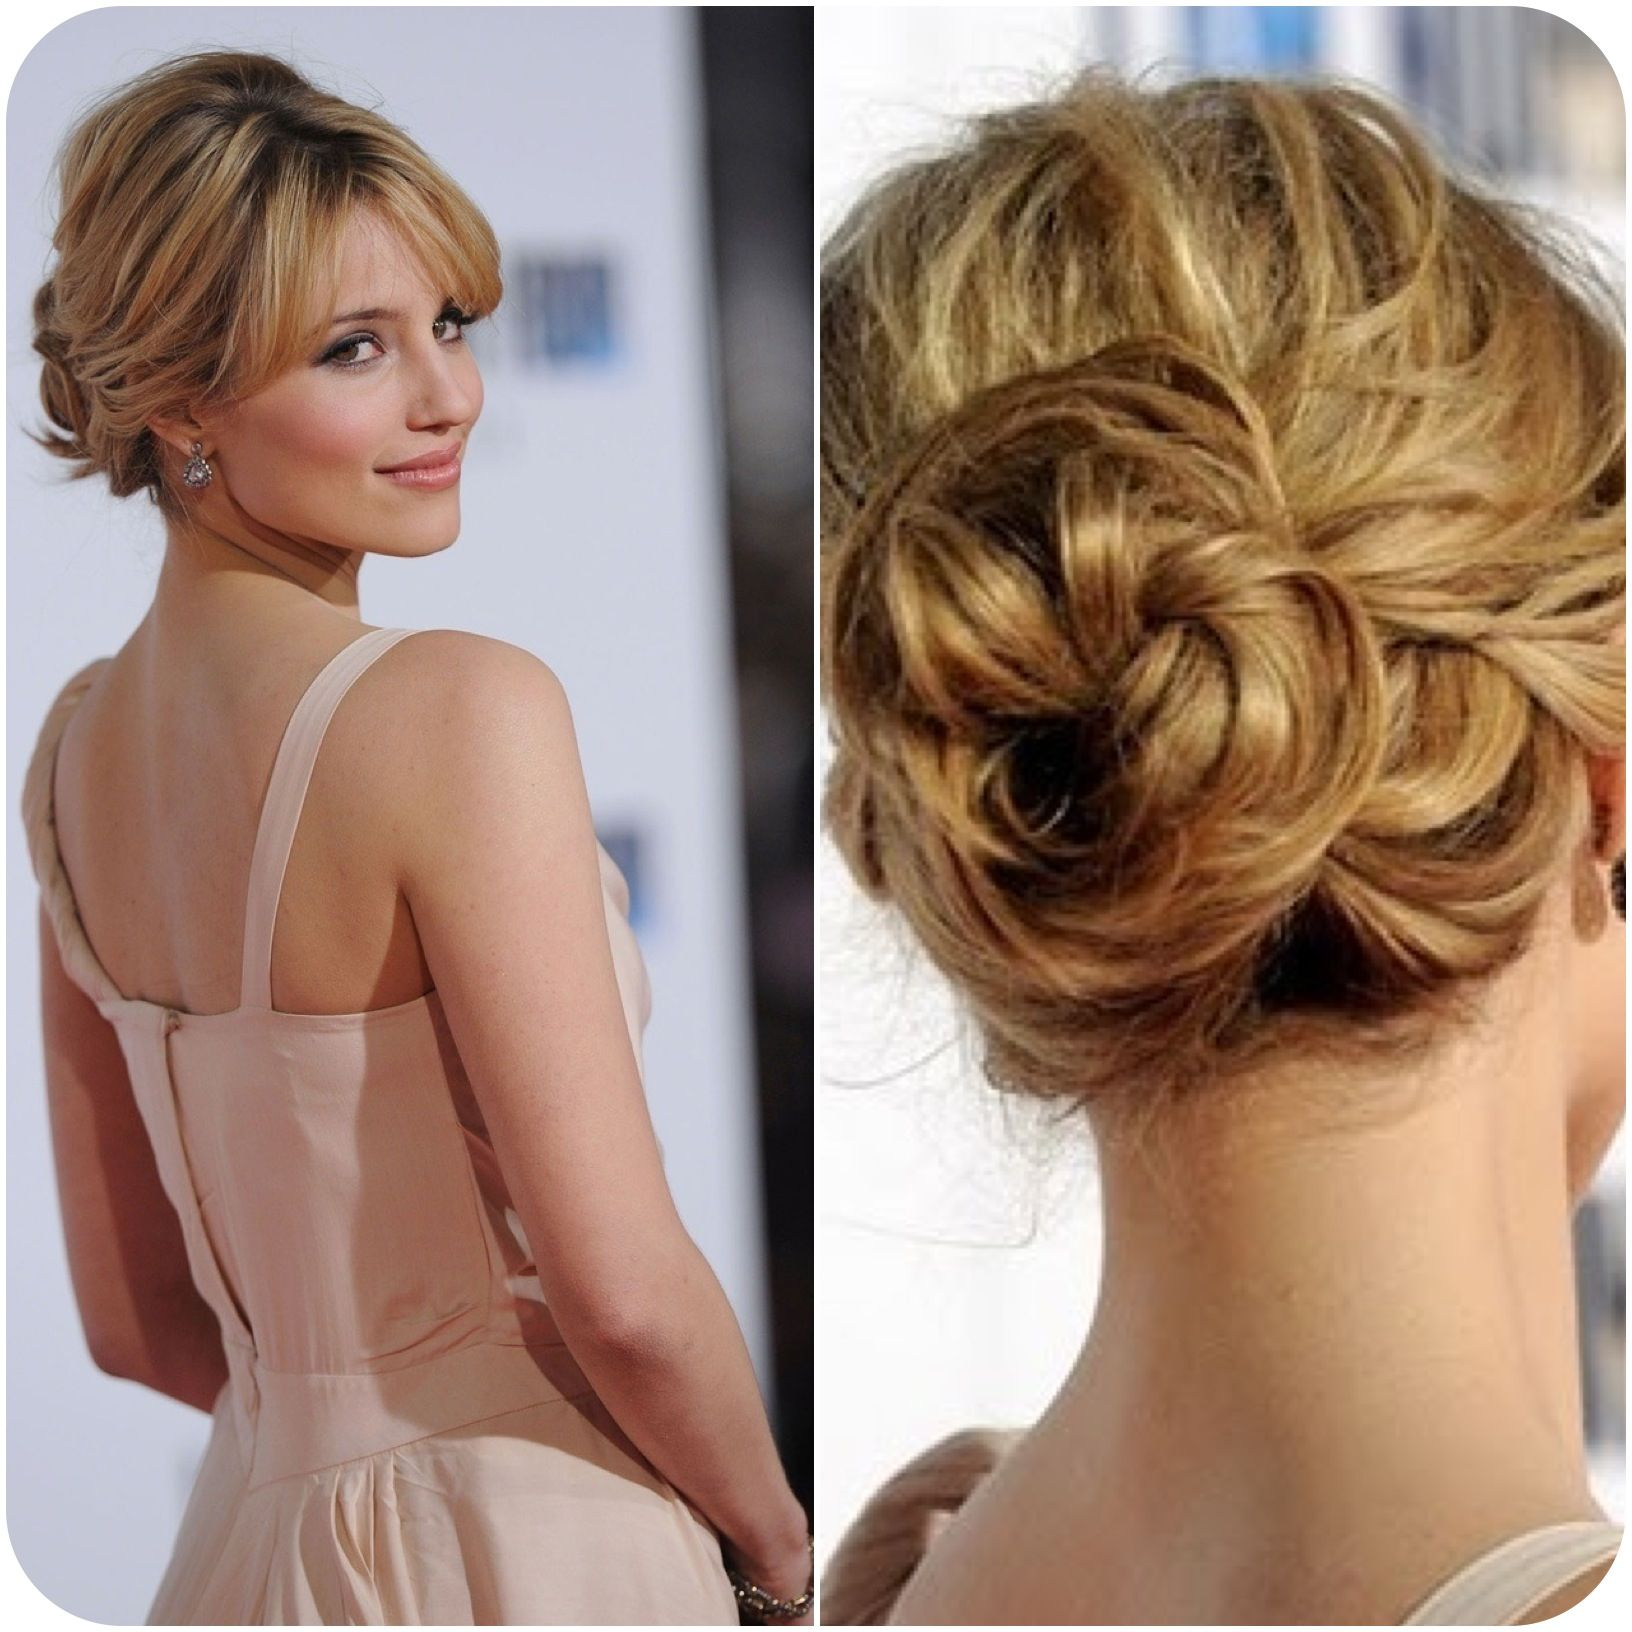 dianna agron romantic updo with bangs | hair | bangs updo